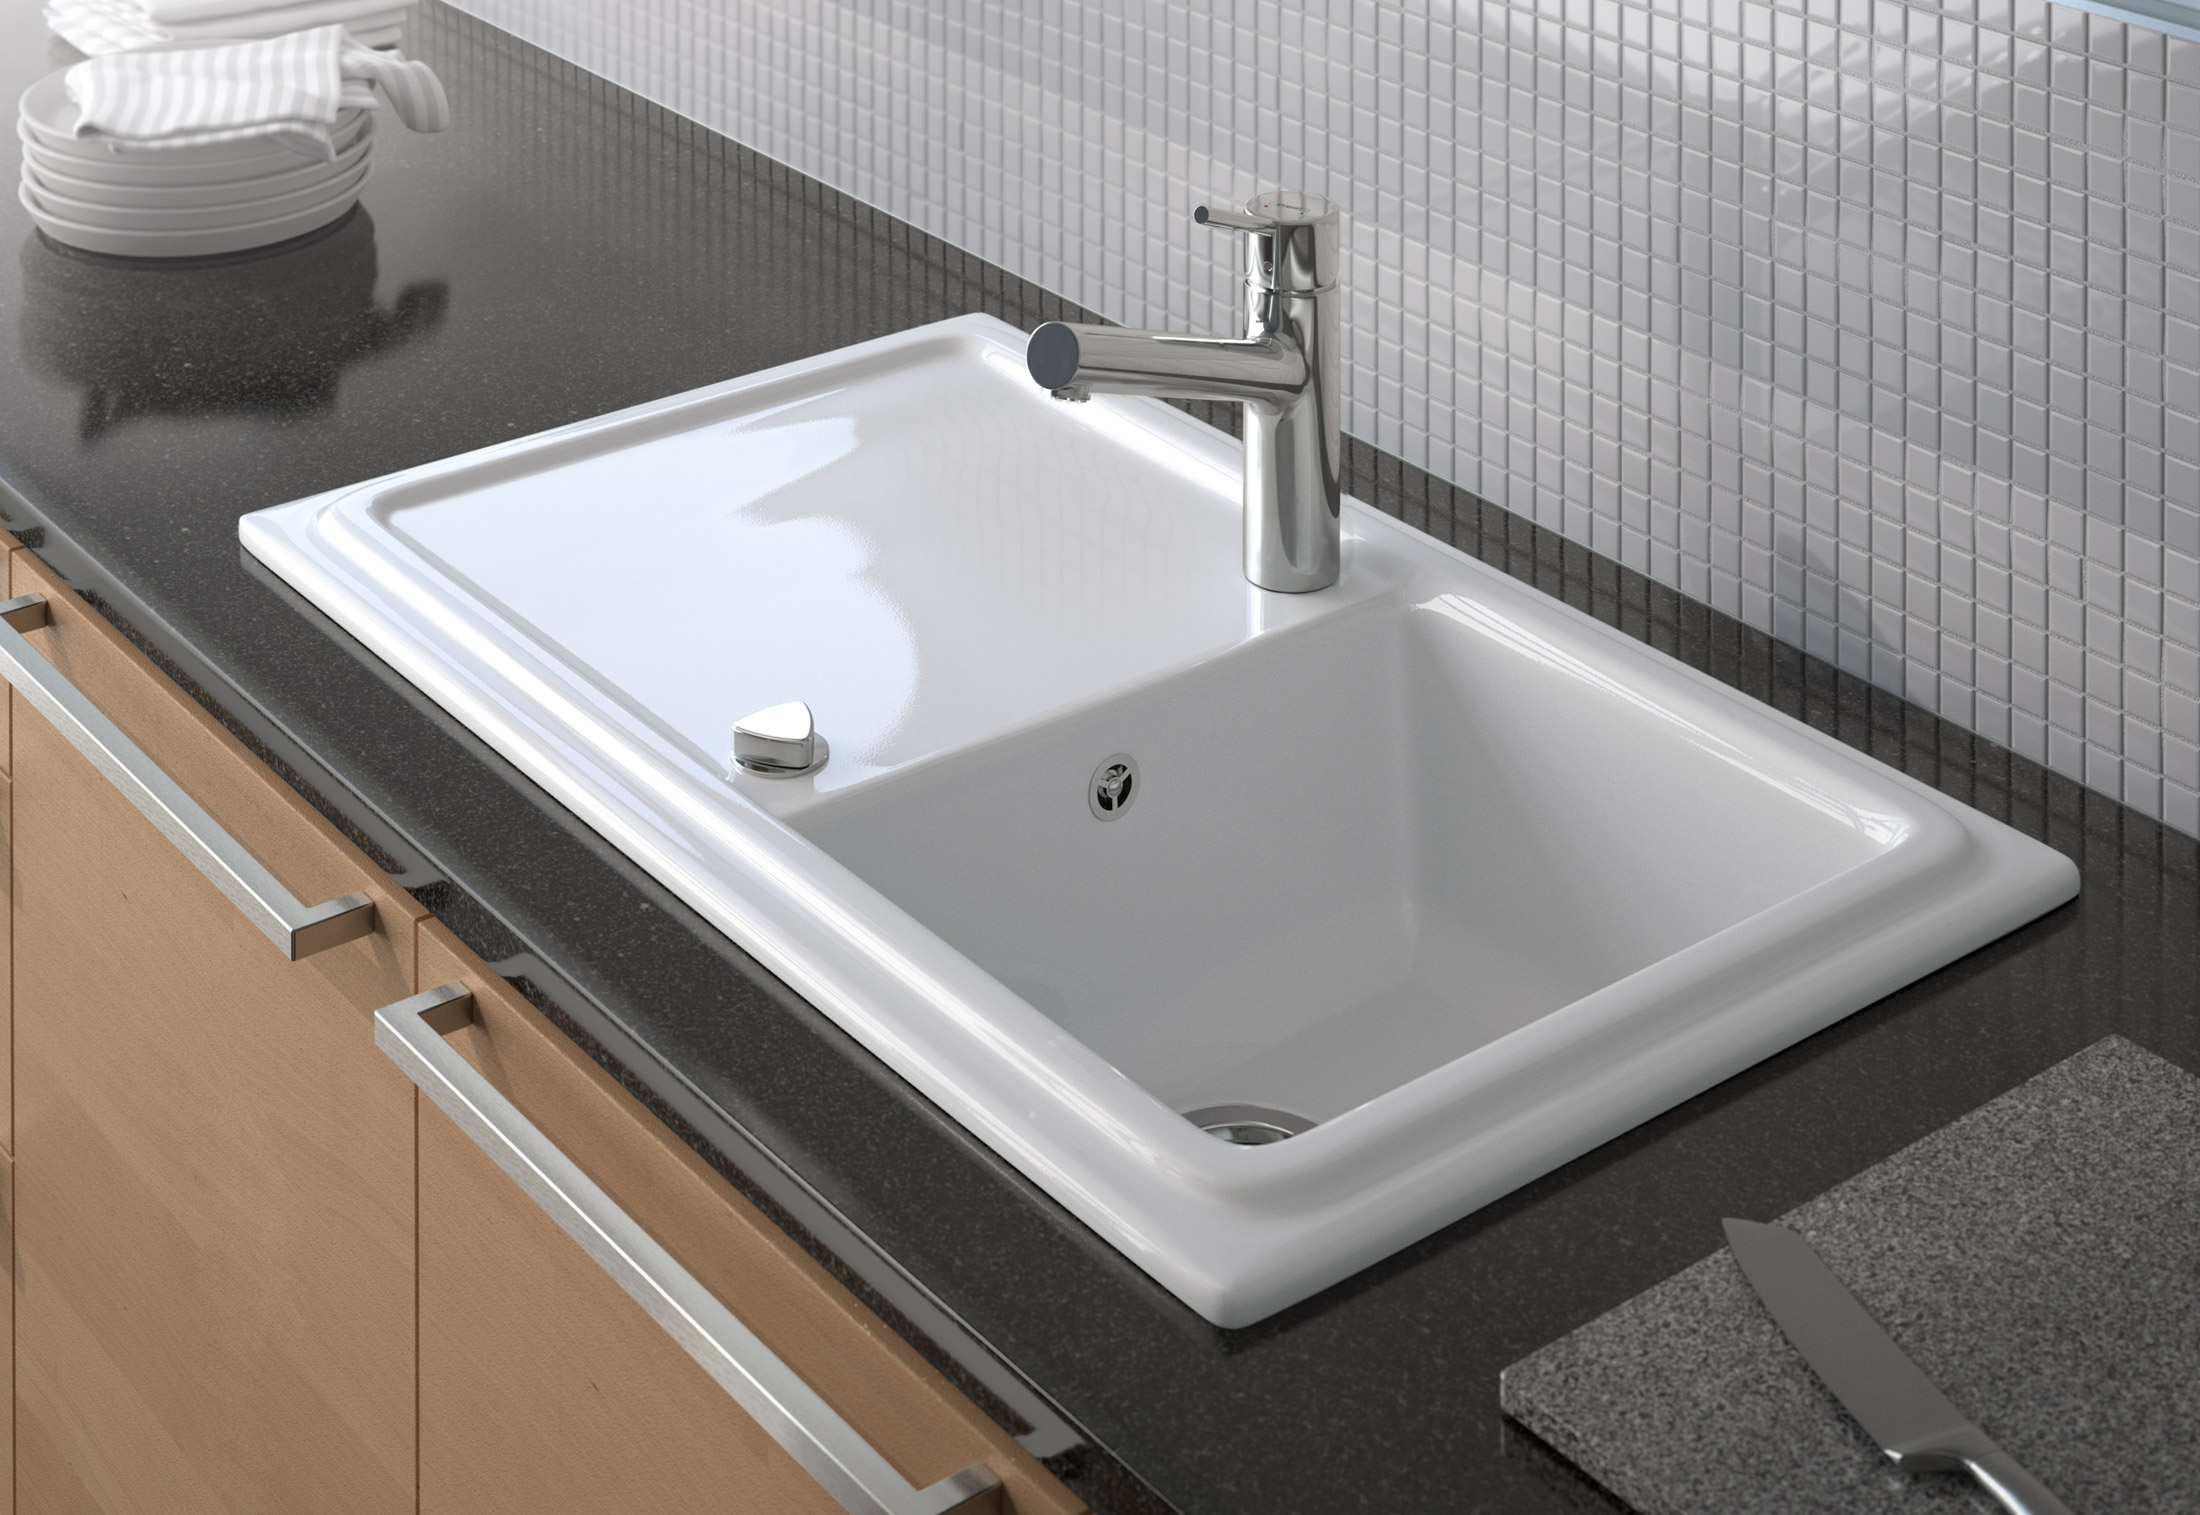 Cassia kitchen sink by duravit stylepark cassia kitchen sink workwithnaturefo